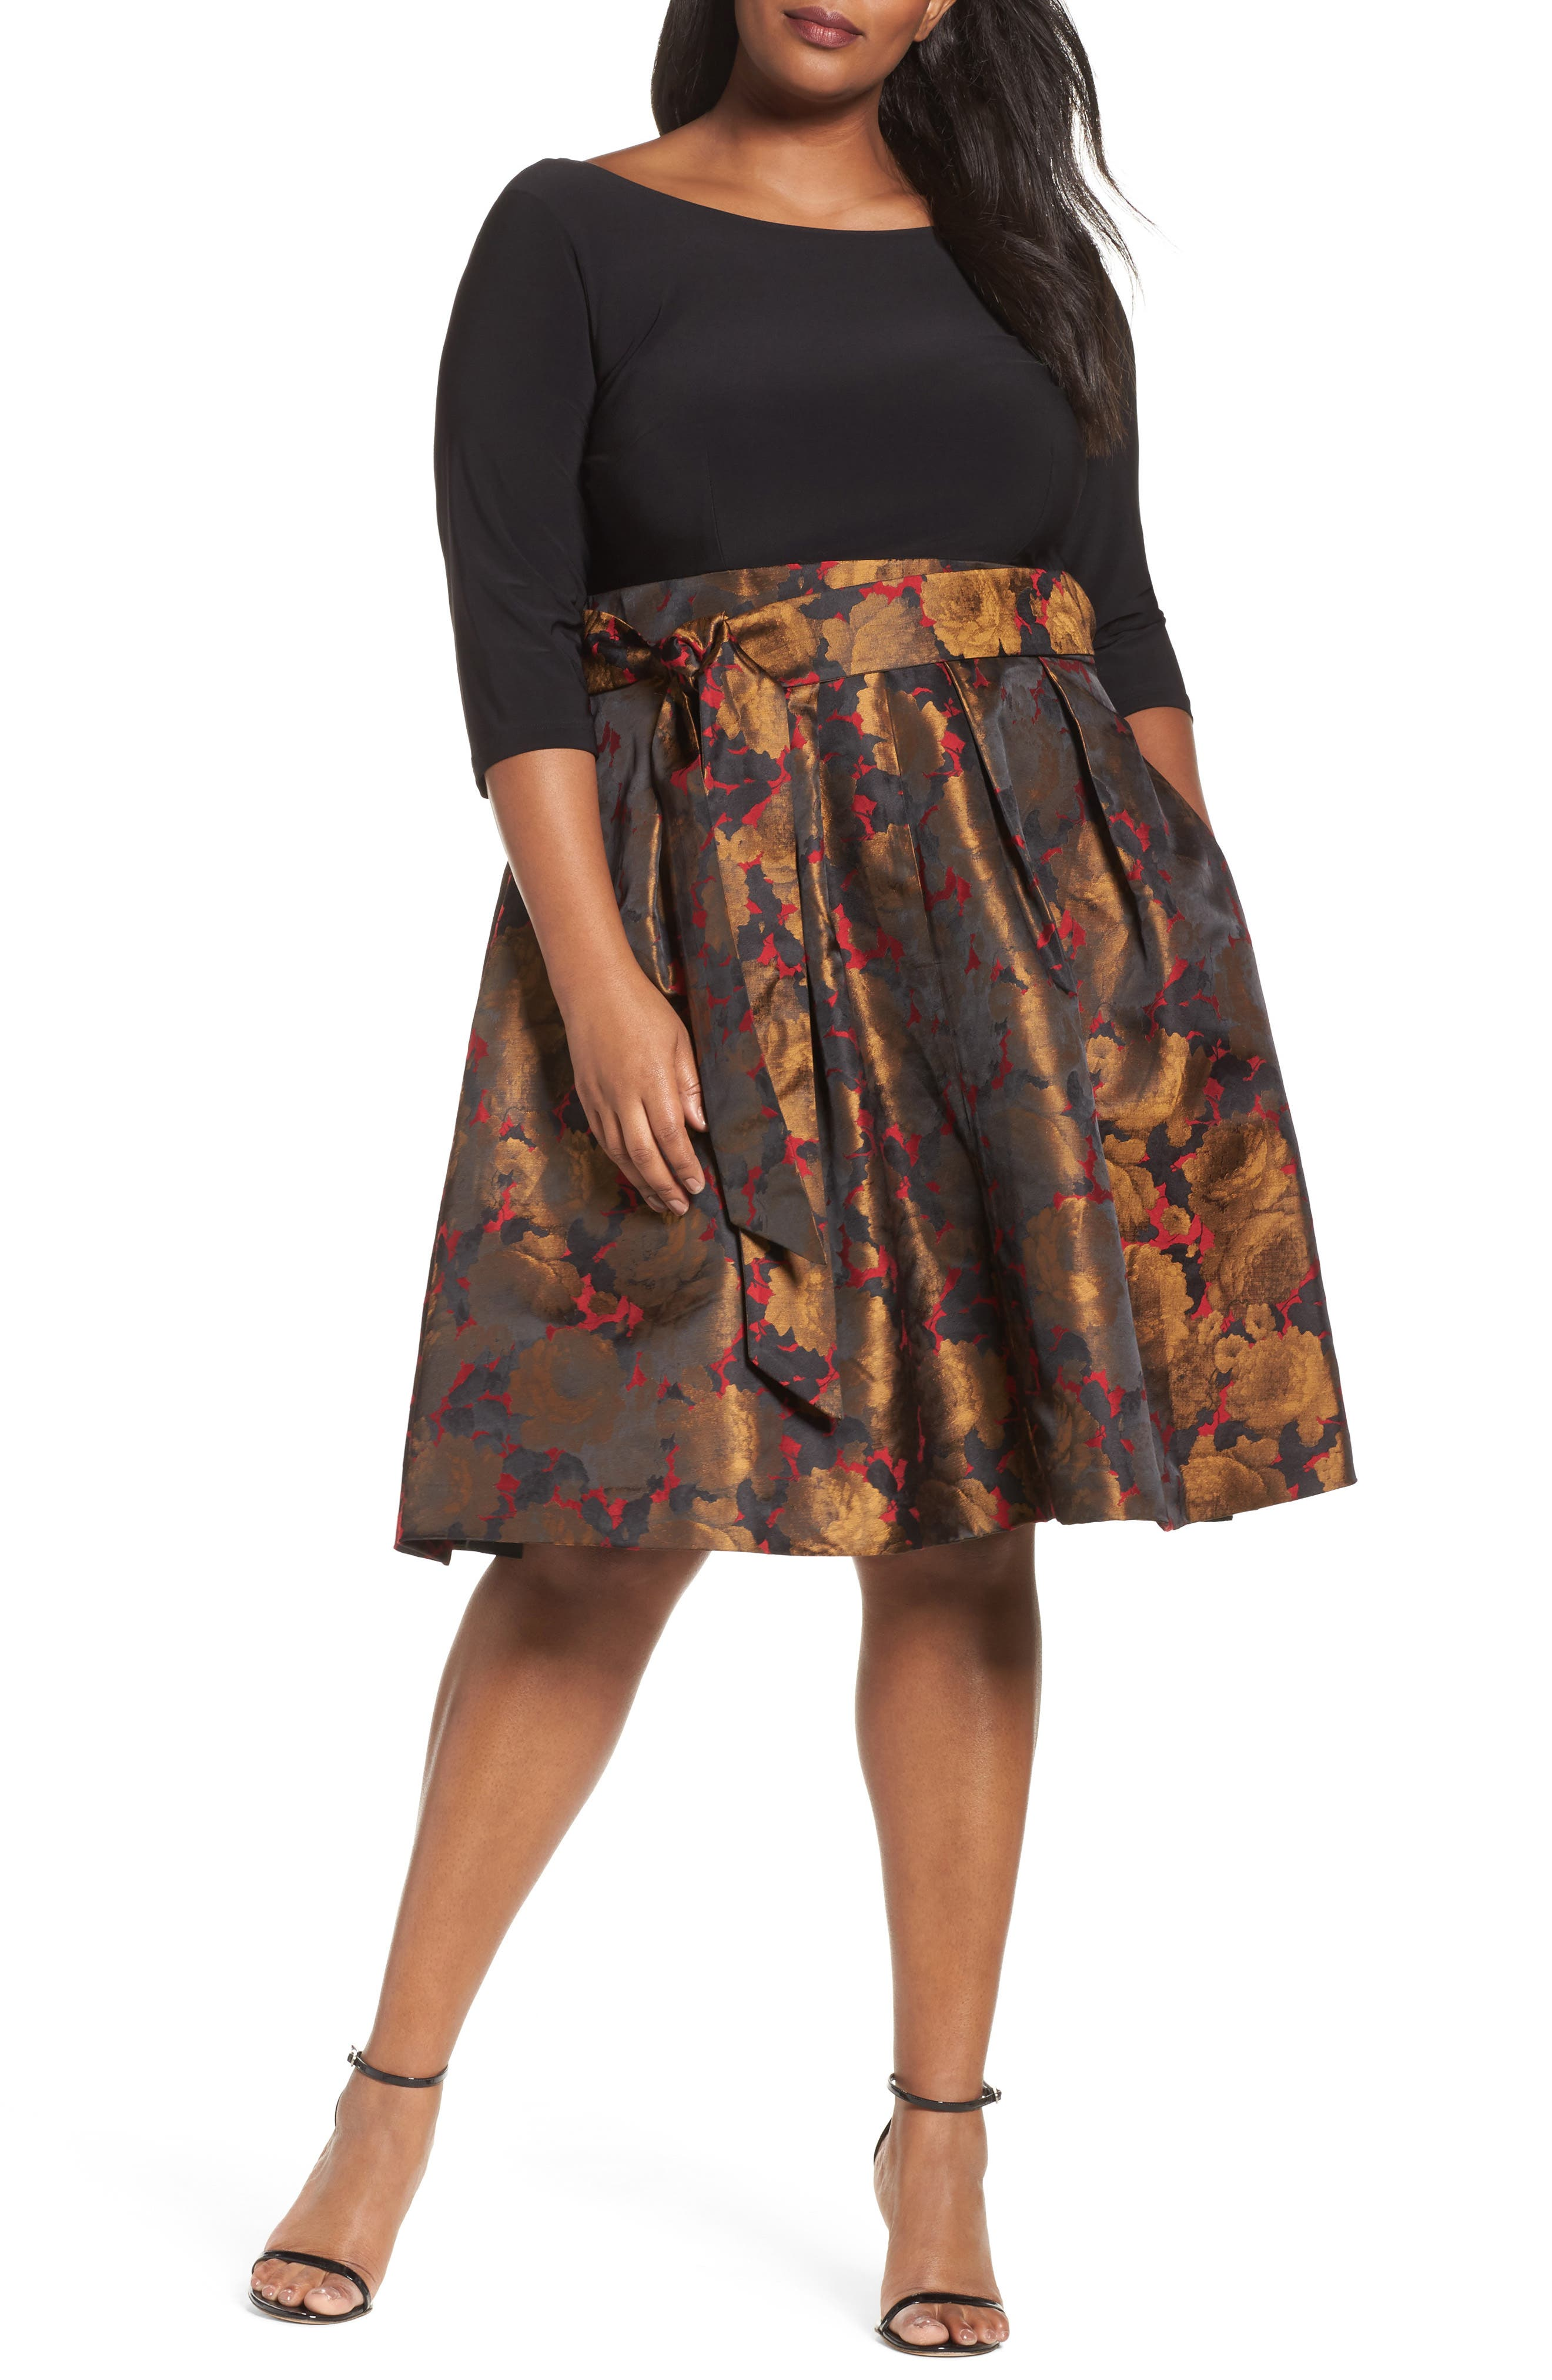 Alternate Image 1 Selected - Adrianna Papell Mixed Media Fit & Flare Dress (Plus Size)